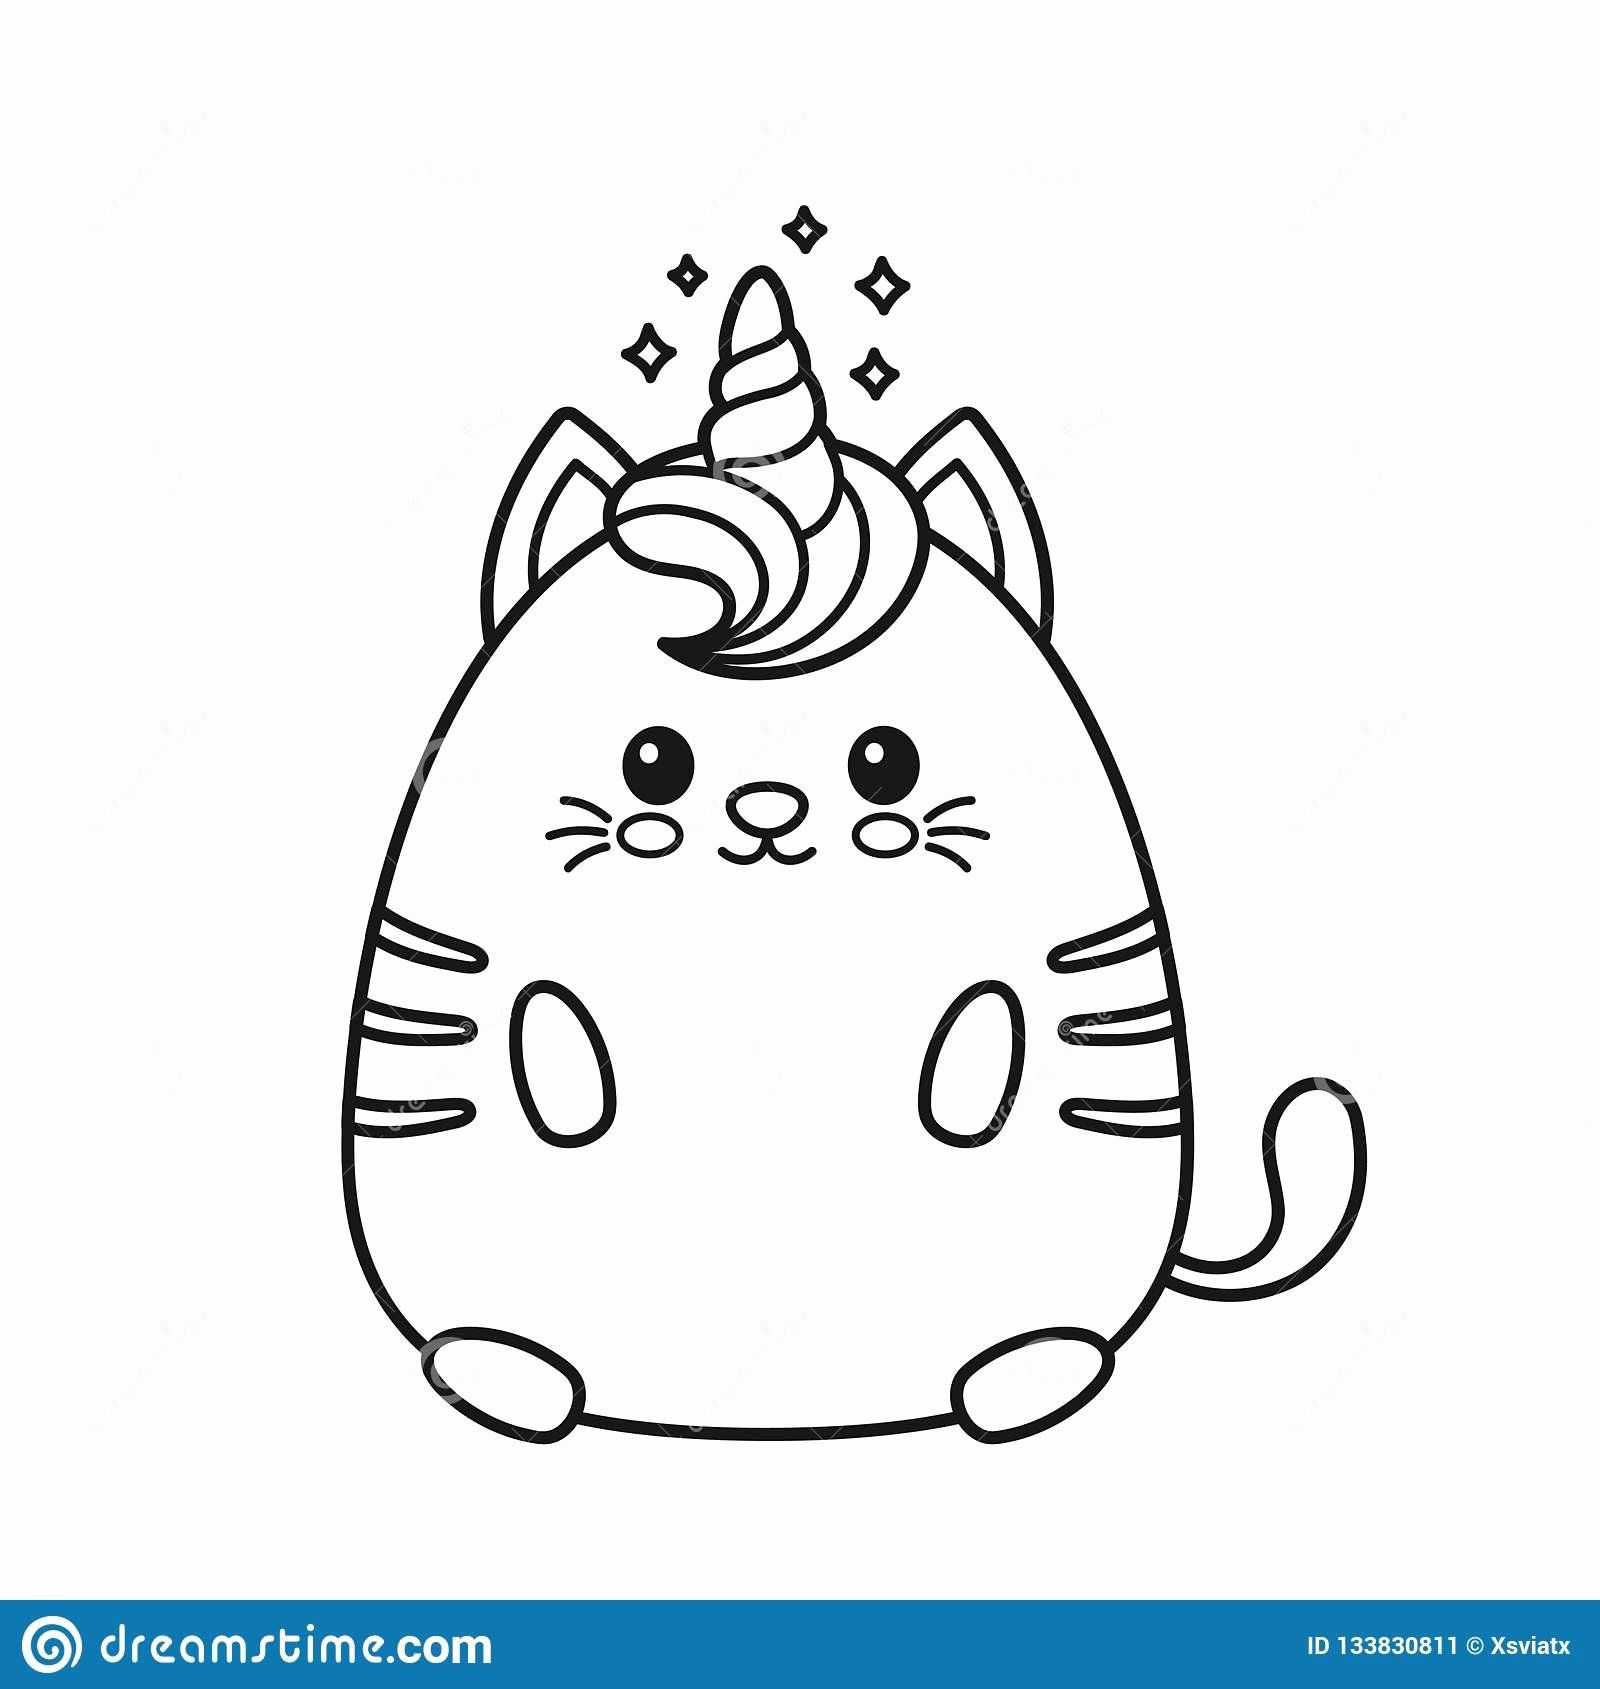 Unicorn Kitty Coloring Pages Lovely Cute Happy Smiling